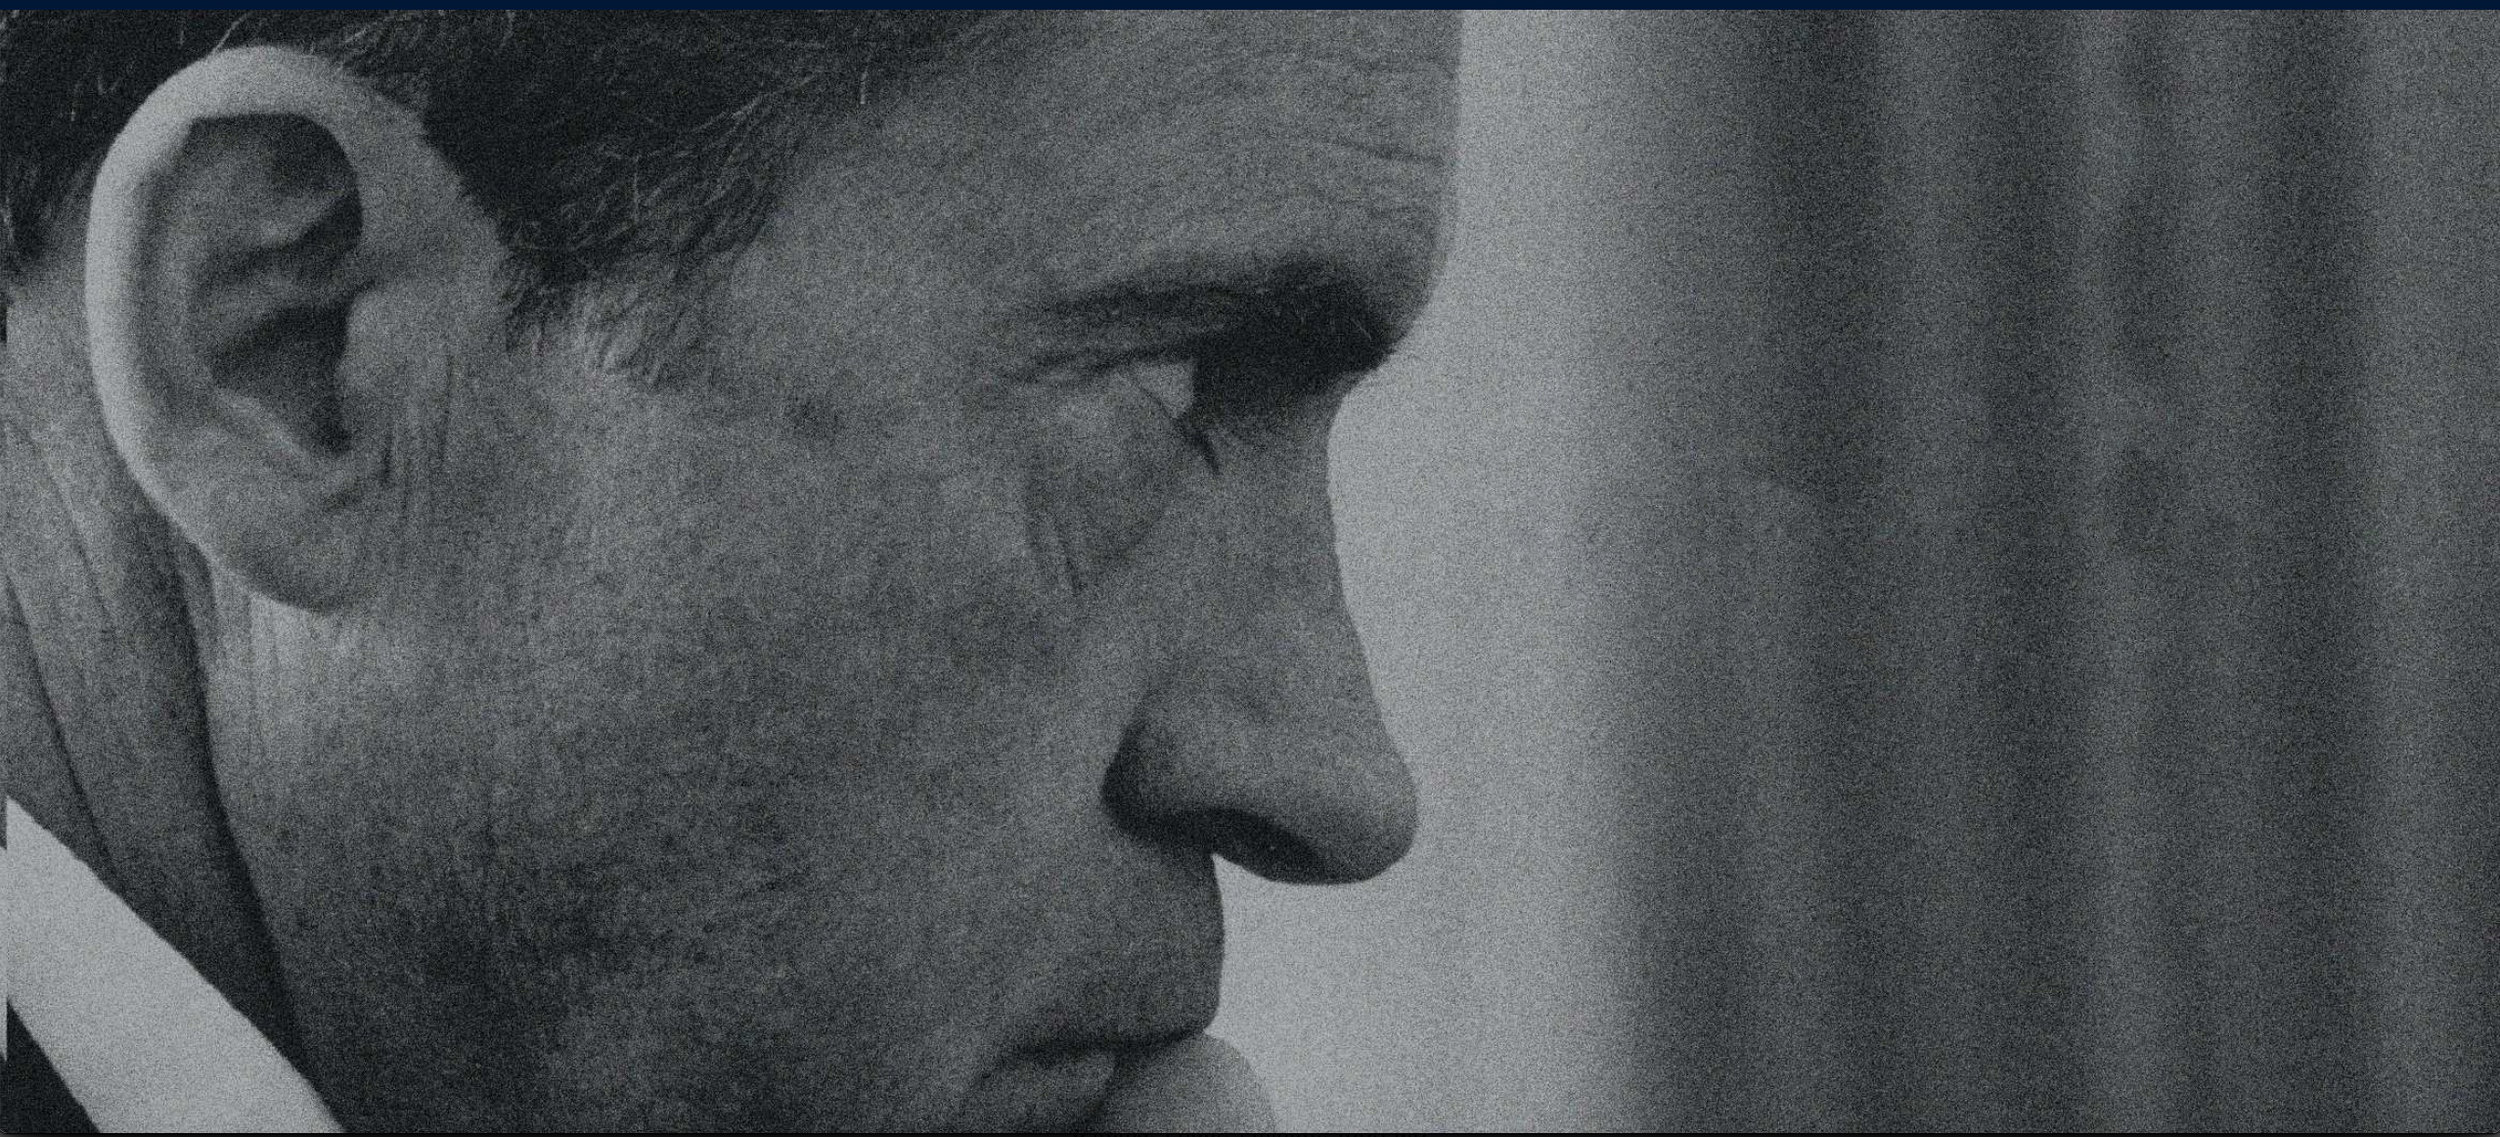 Michael Josephs Richard Nixon Memorial Library film